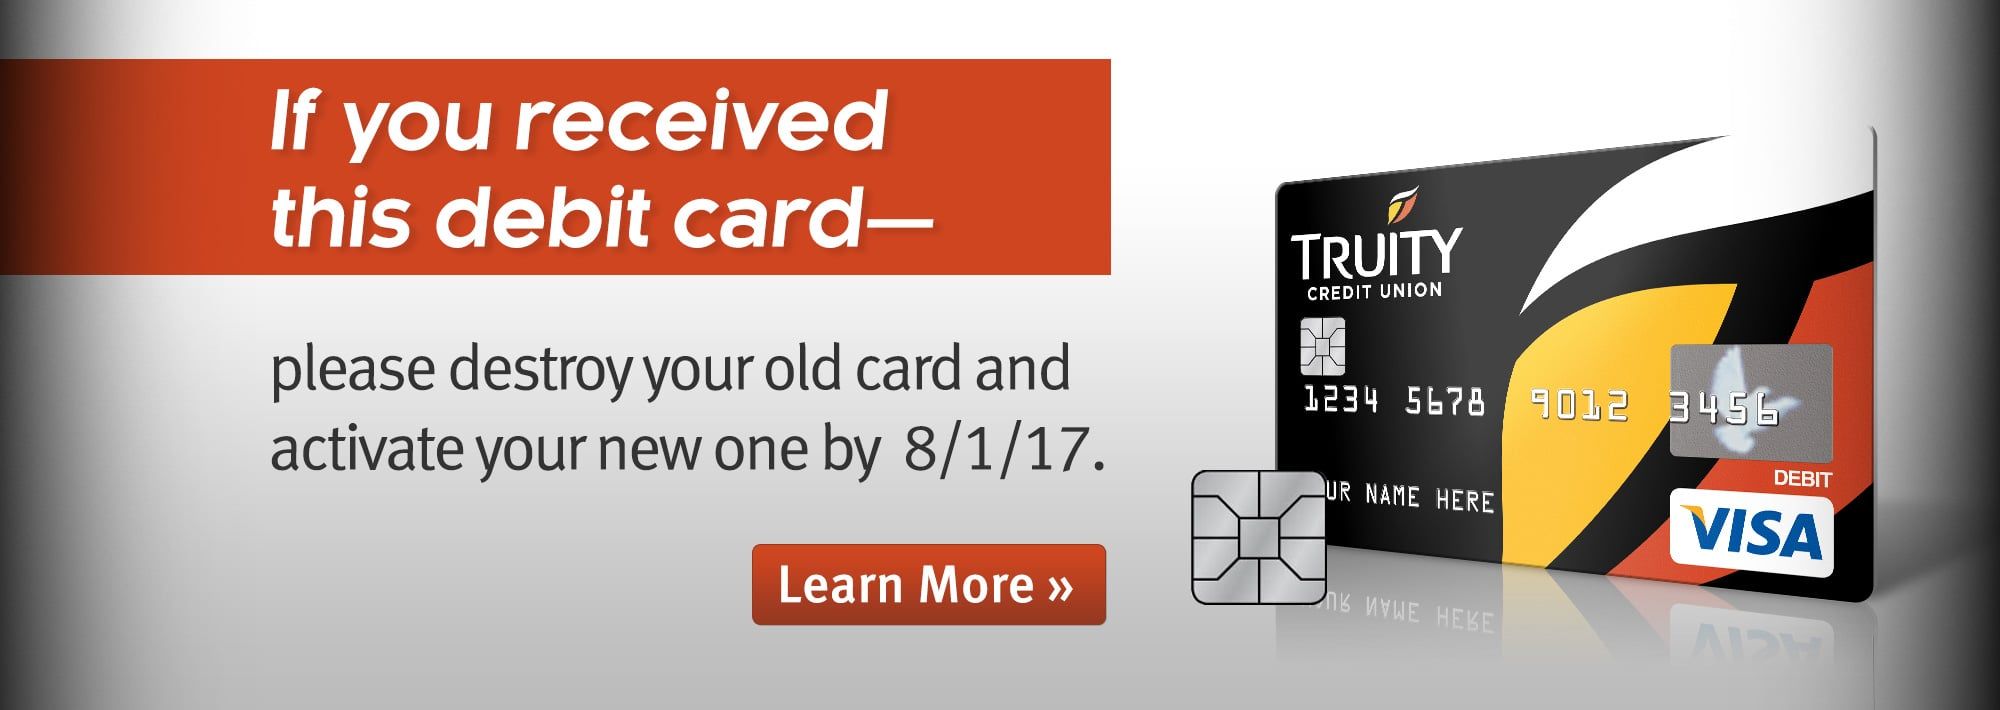 Don't forget! If you recently received this debit card with the chip, activate it by August 1st!